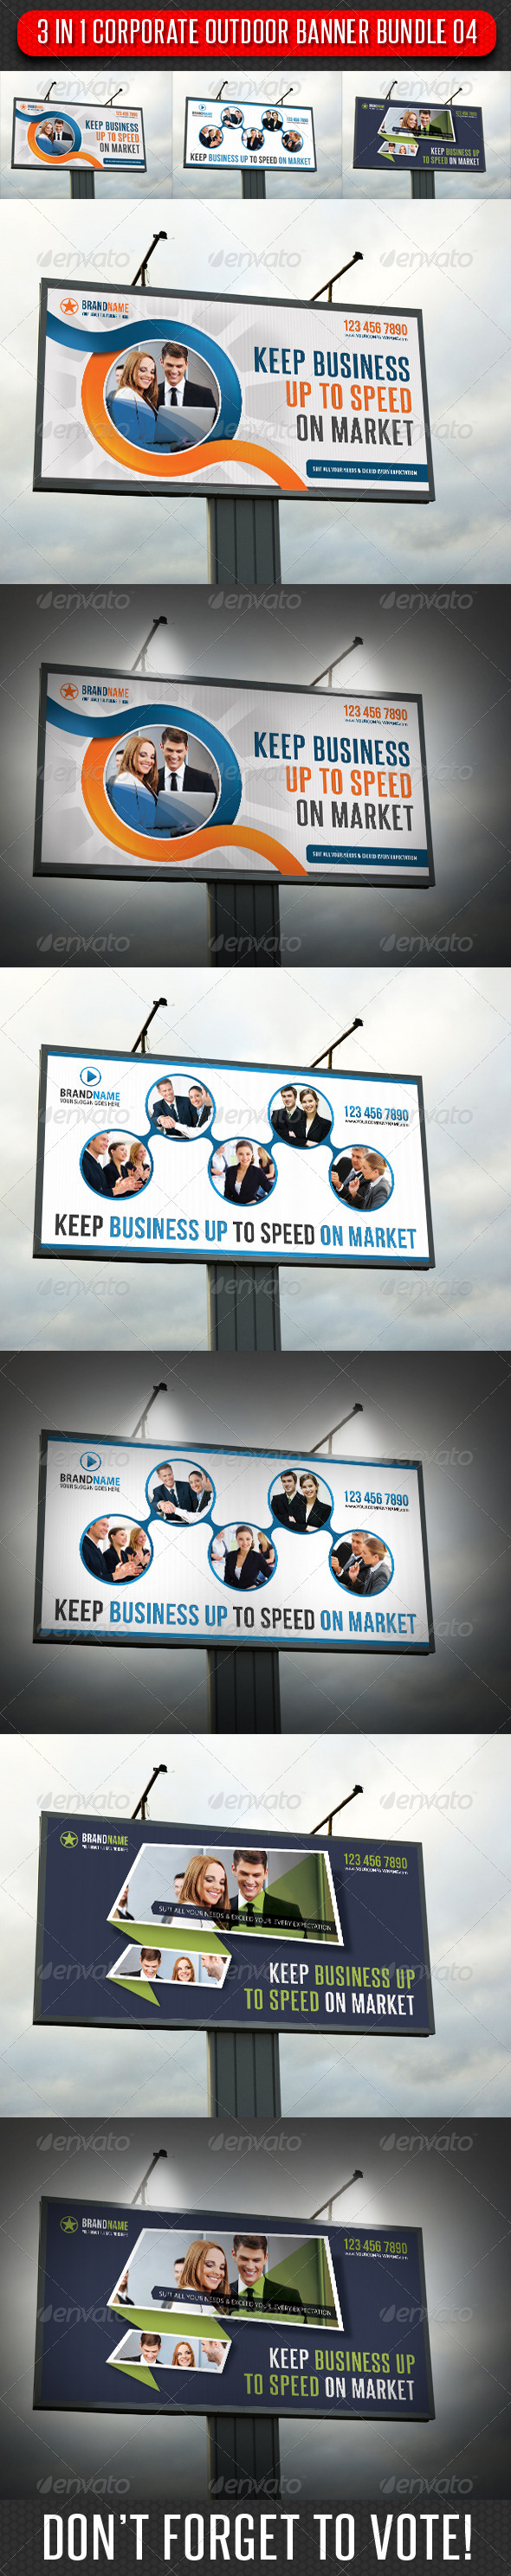 GraphicRiver 3 in 1 Corporate Outdoor Banner Bundle 04 6629450